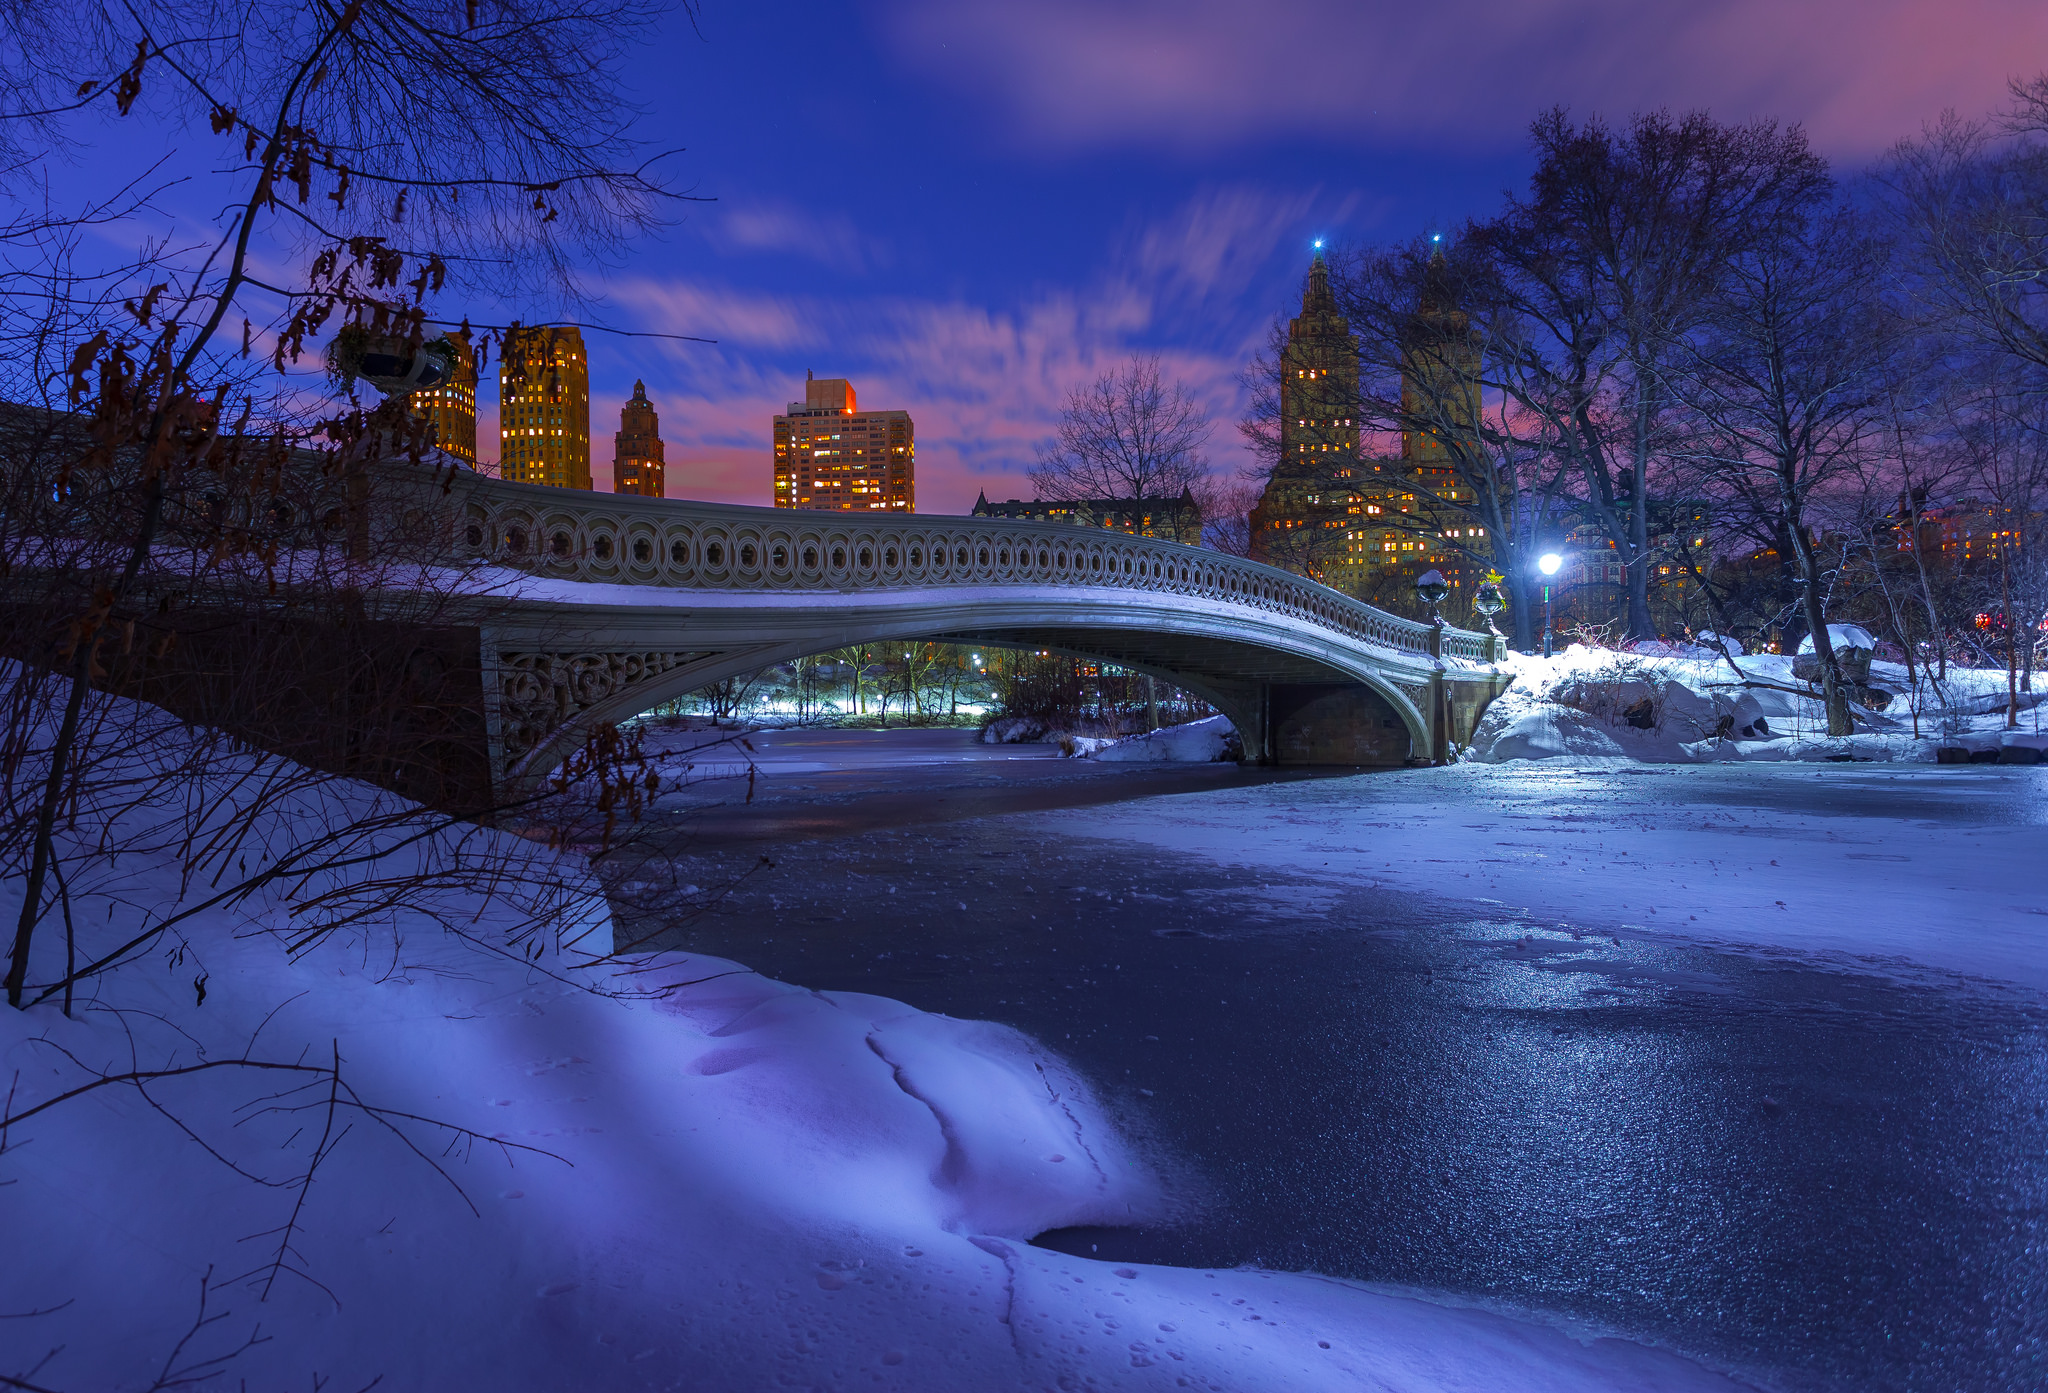 Winter Night in Central Park HD Wallpaper Background Image 2048x1393